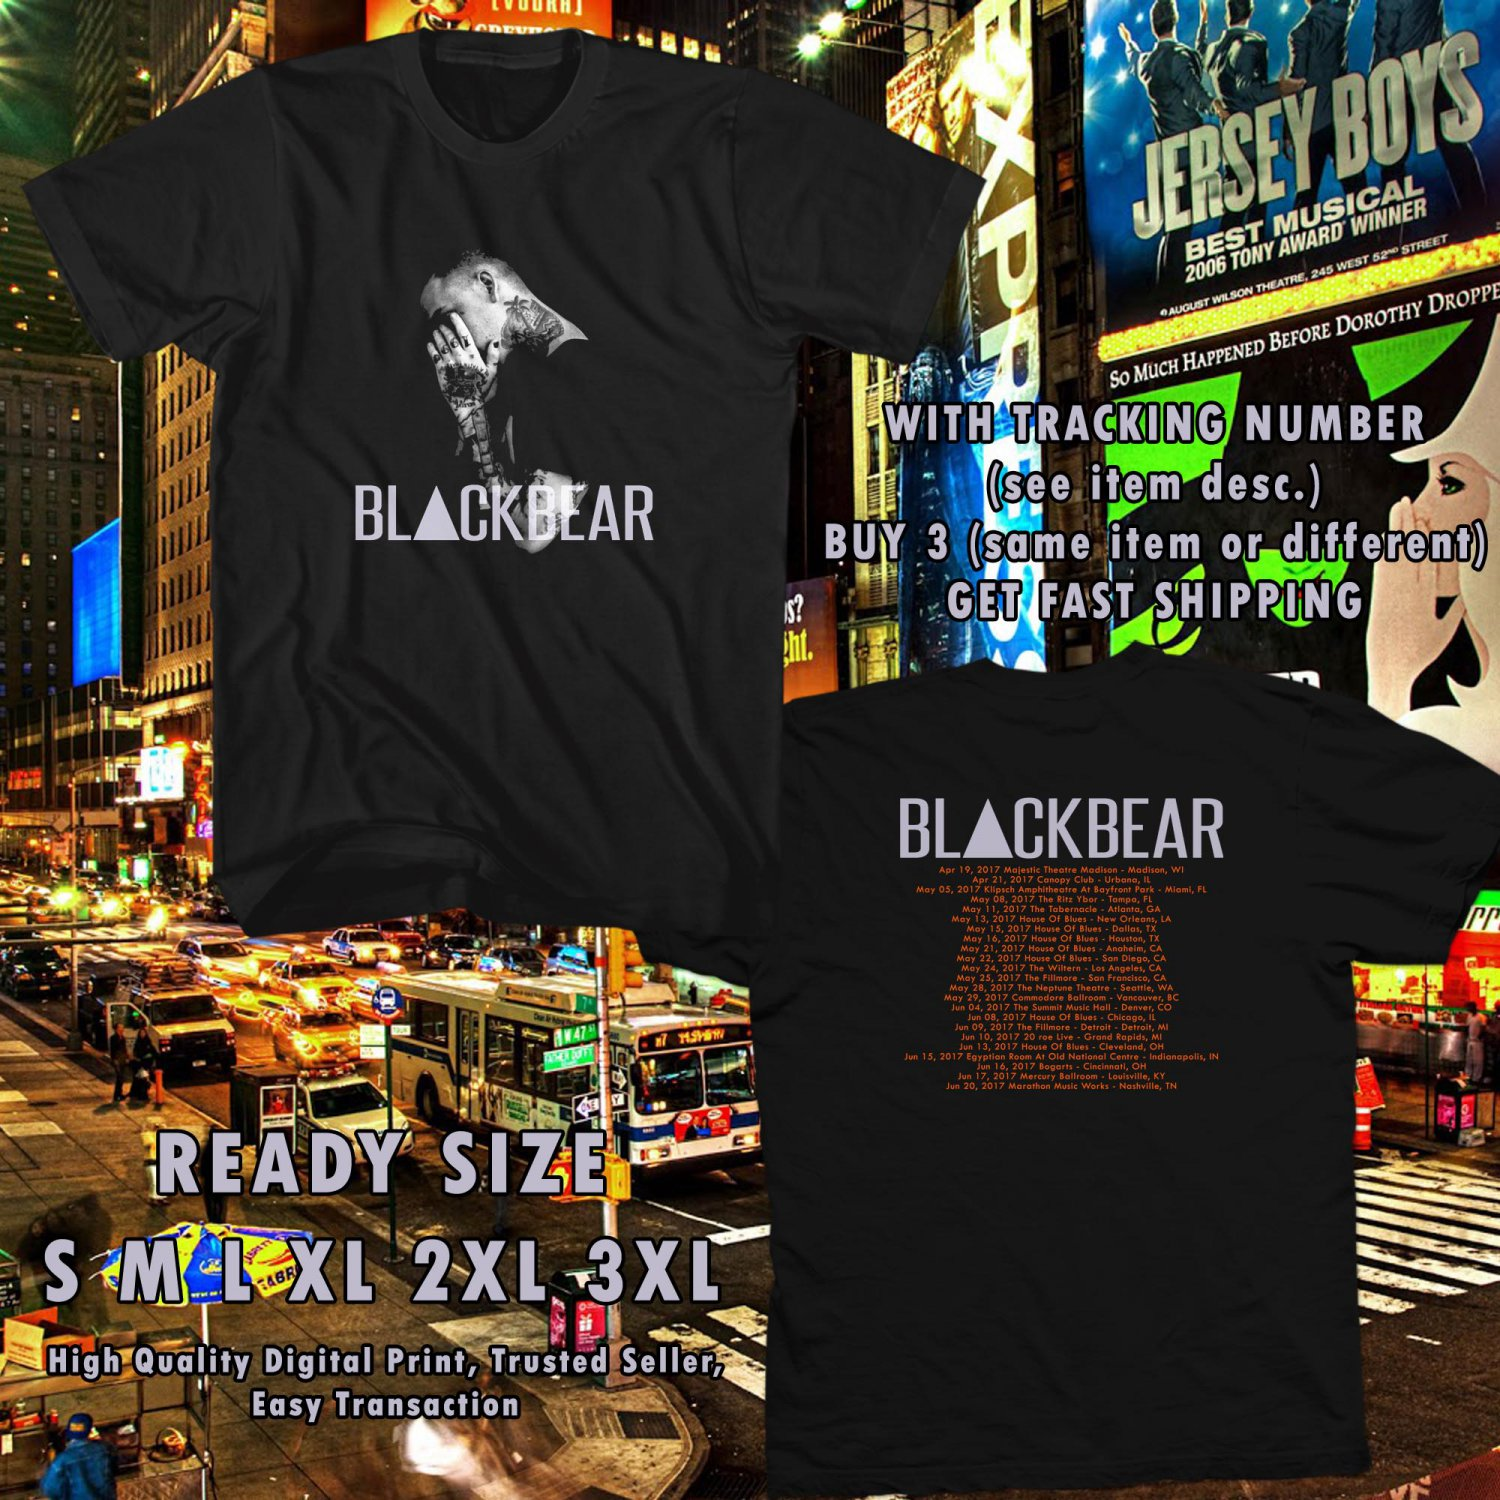 NEW BLACKBEAR DIGITAL DRUG TOUR 2017 BLACK TEE W DATES DMTR 665